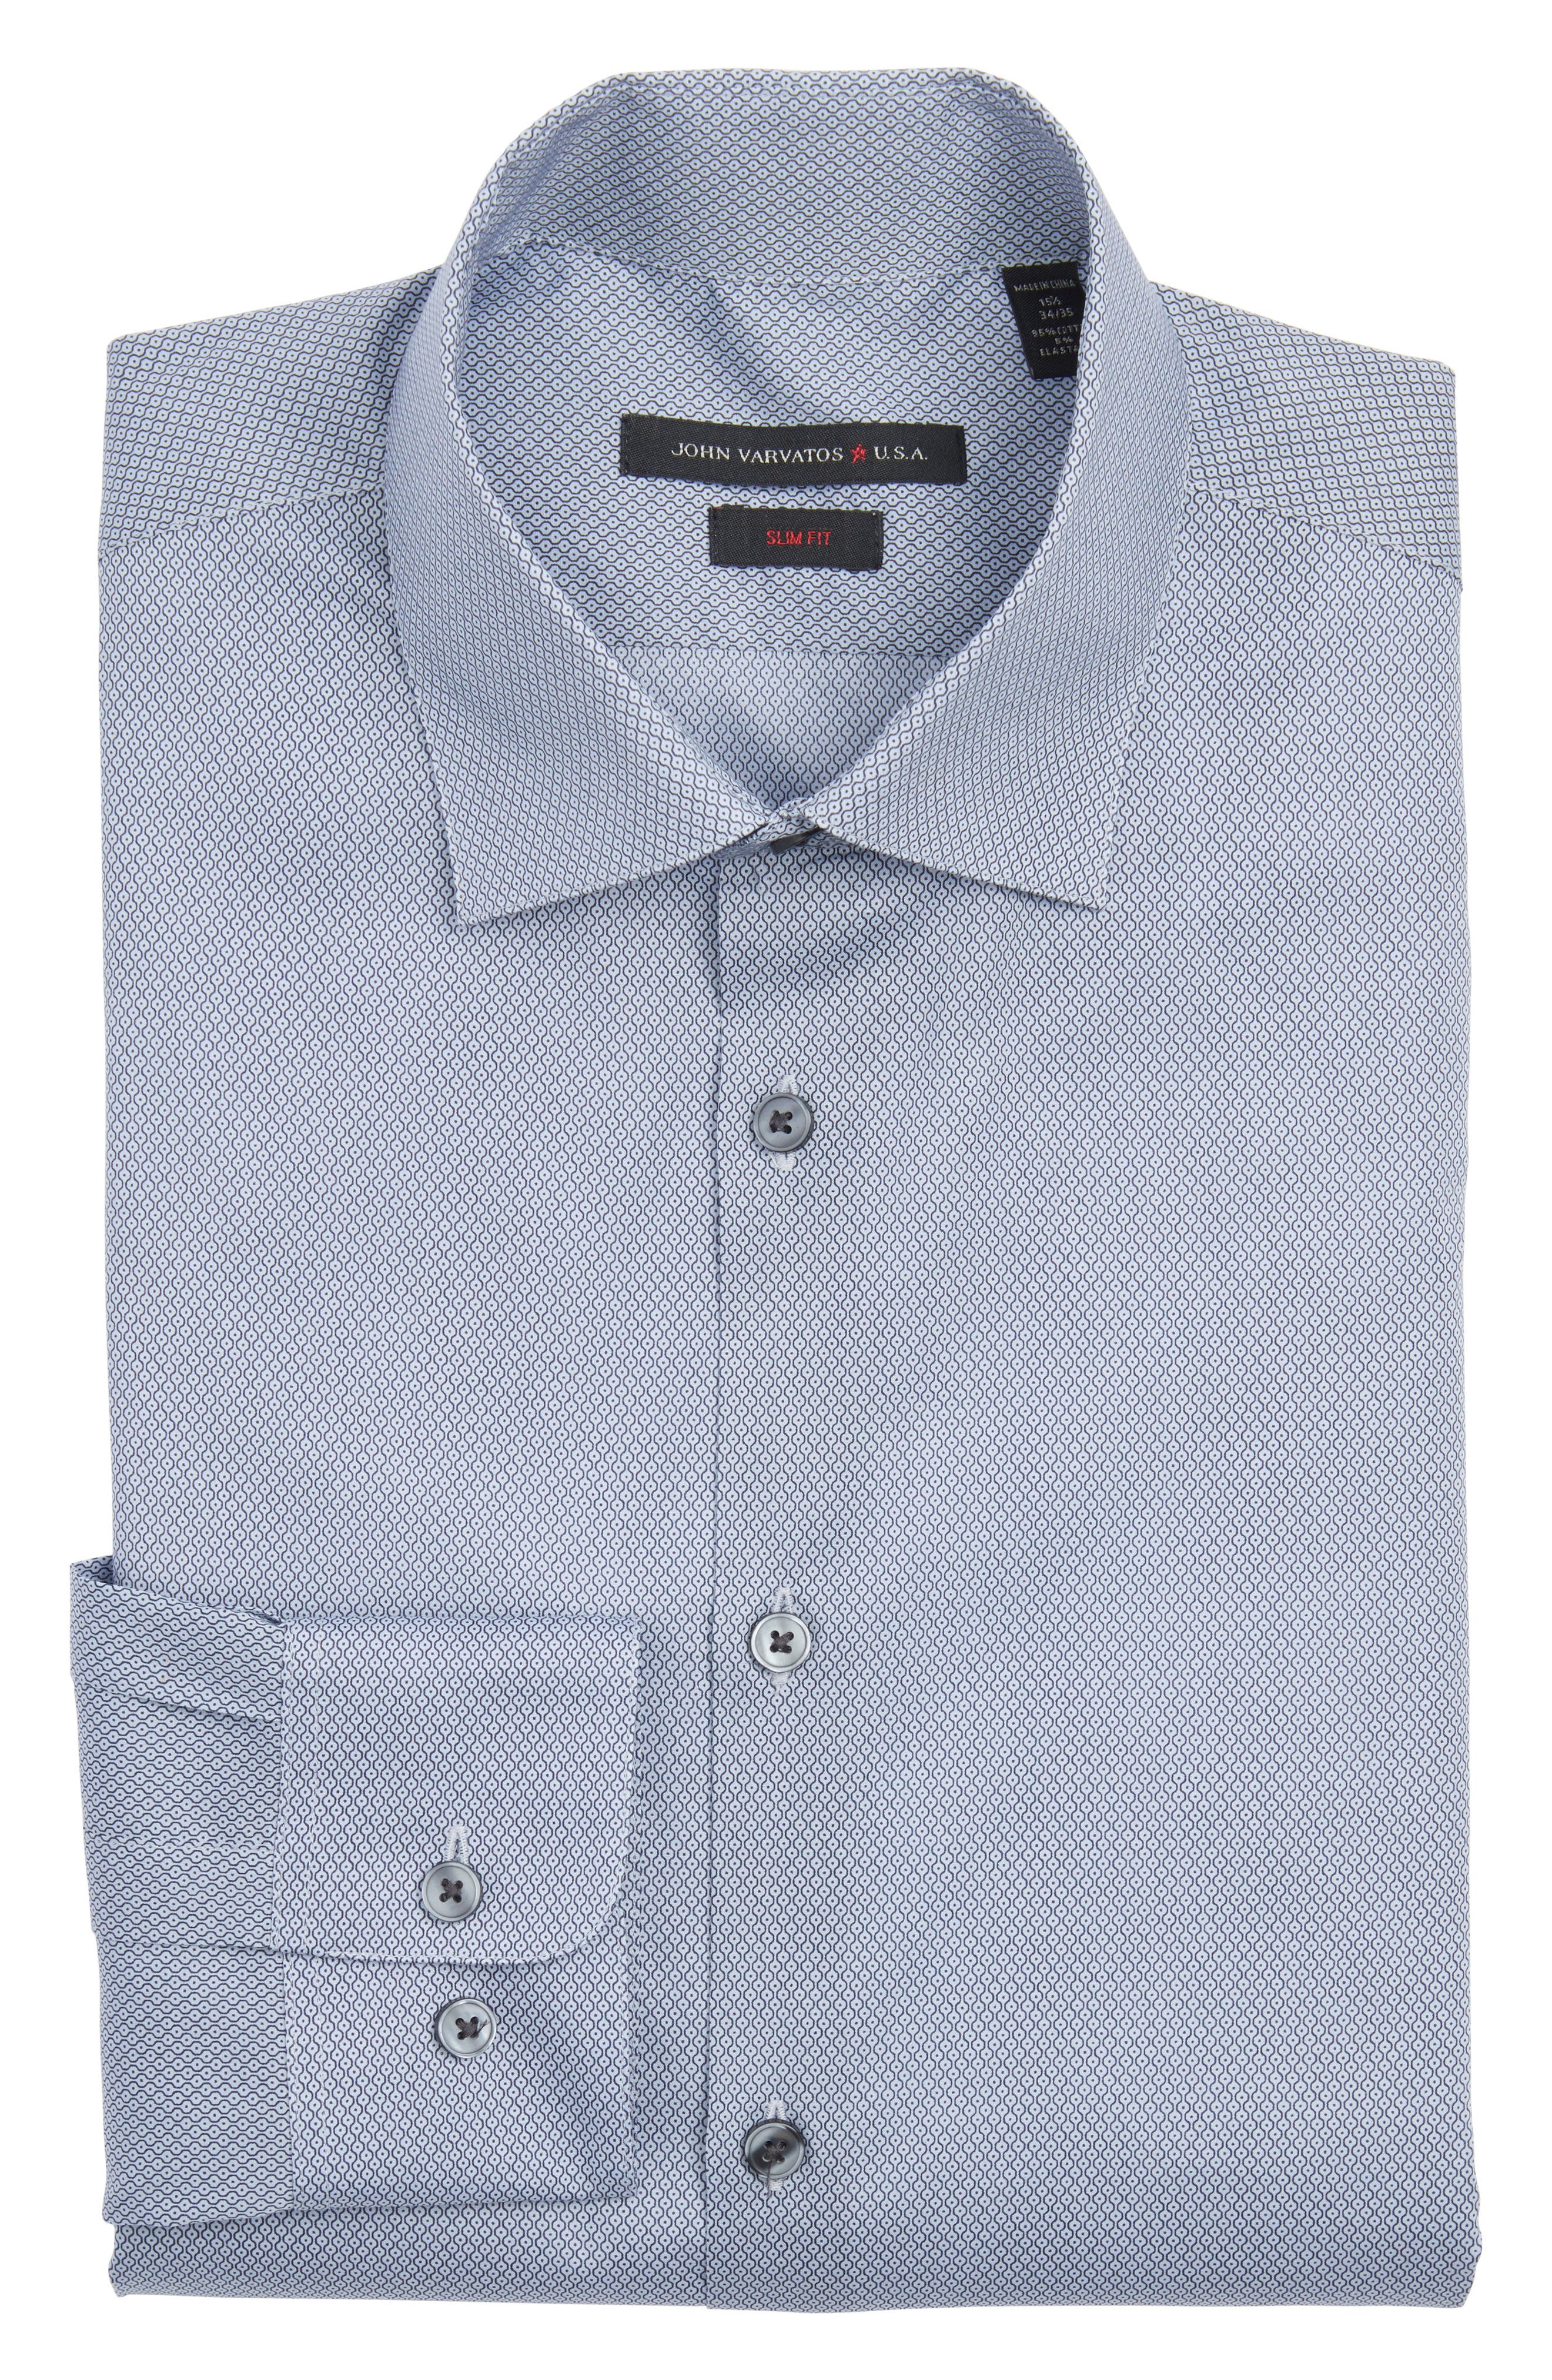 Slim Fit Geometric Dress Shirt,                             Main thumbnail 1, color,                             Navy